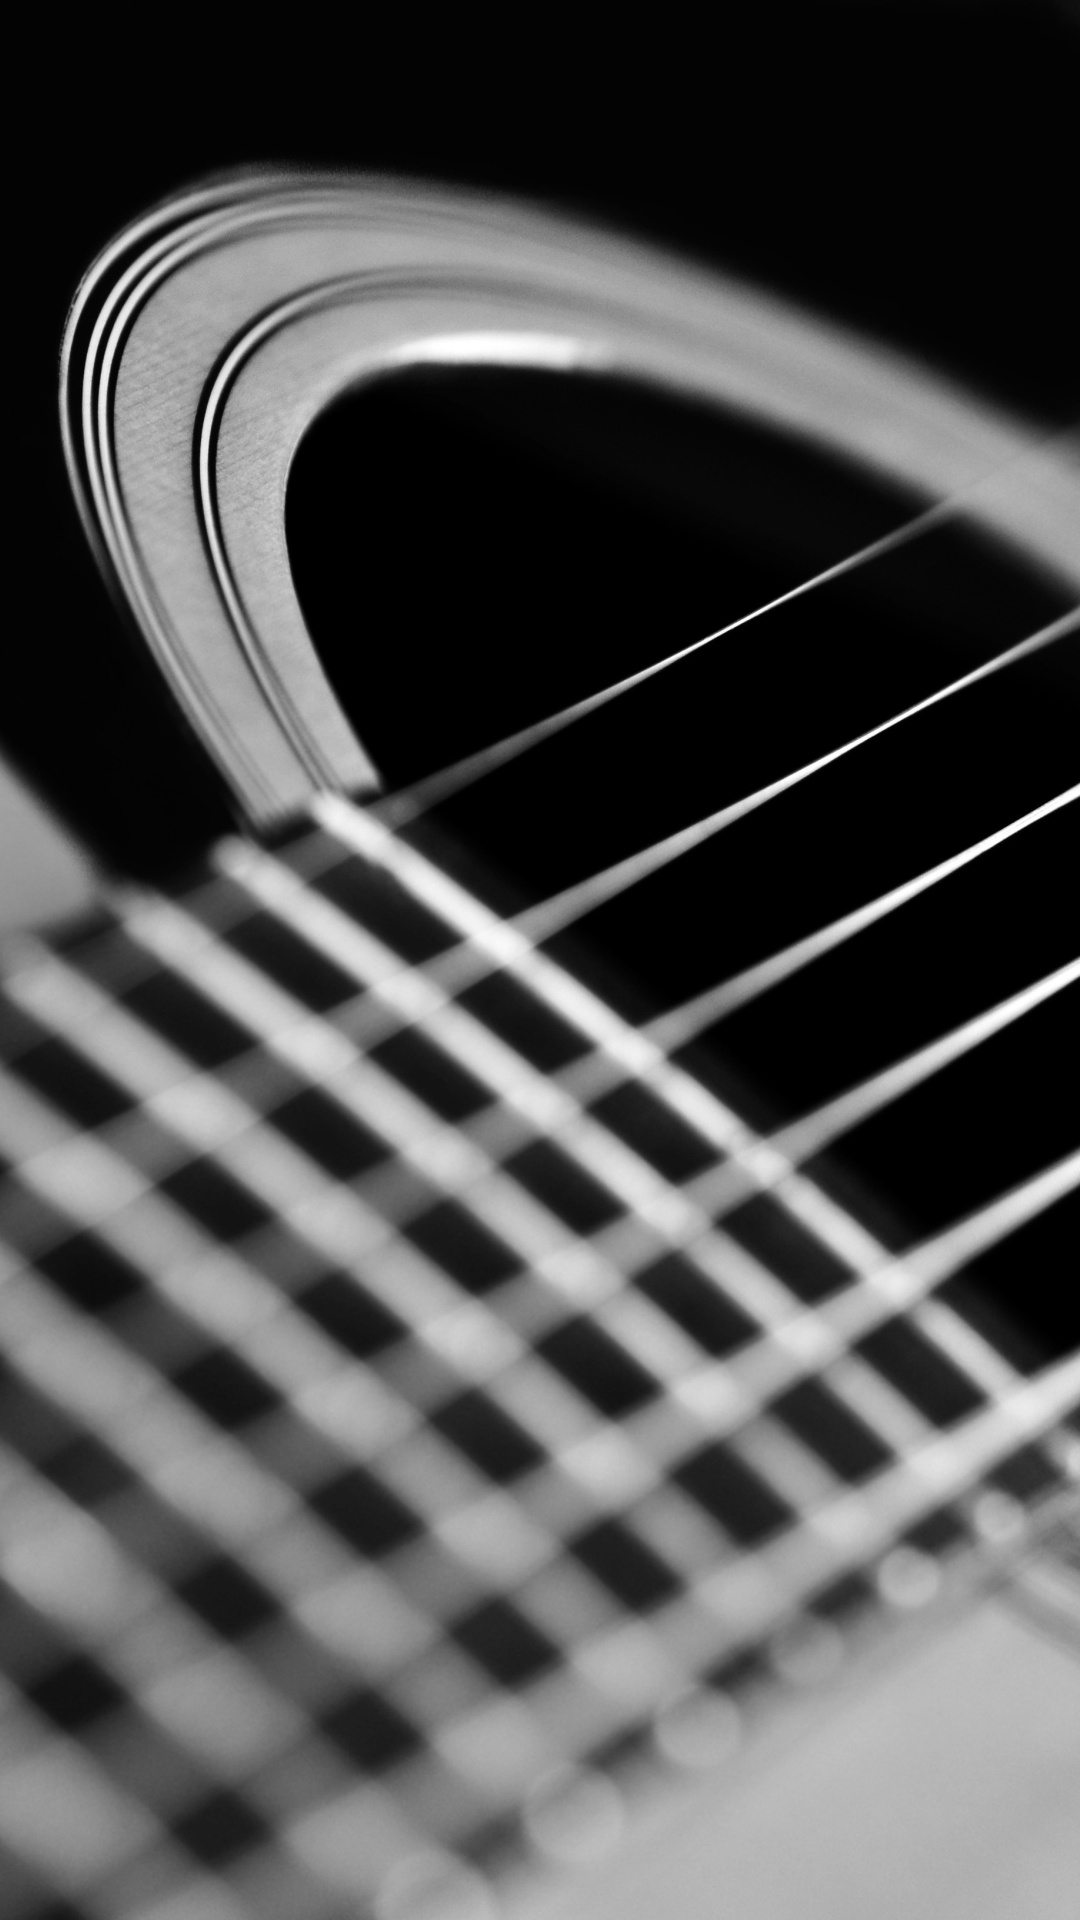 Classical Guitar Six String Wallpapers 1080x1920 286092